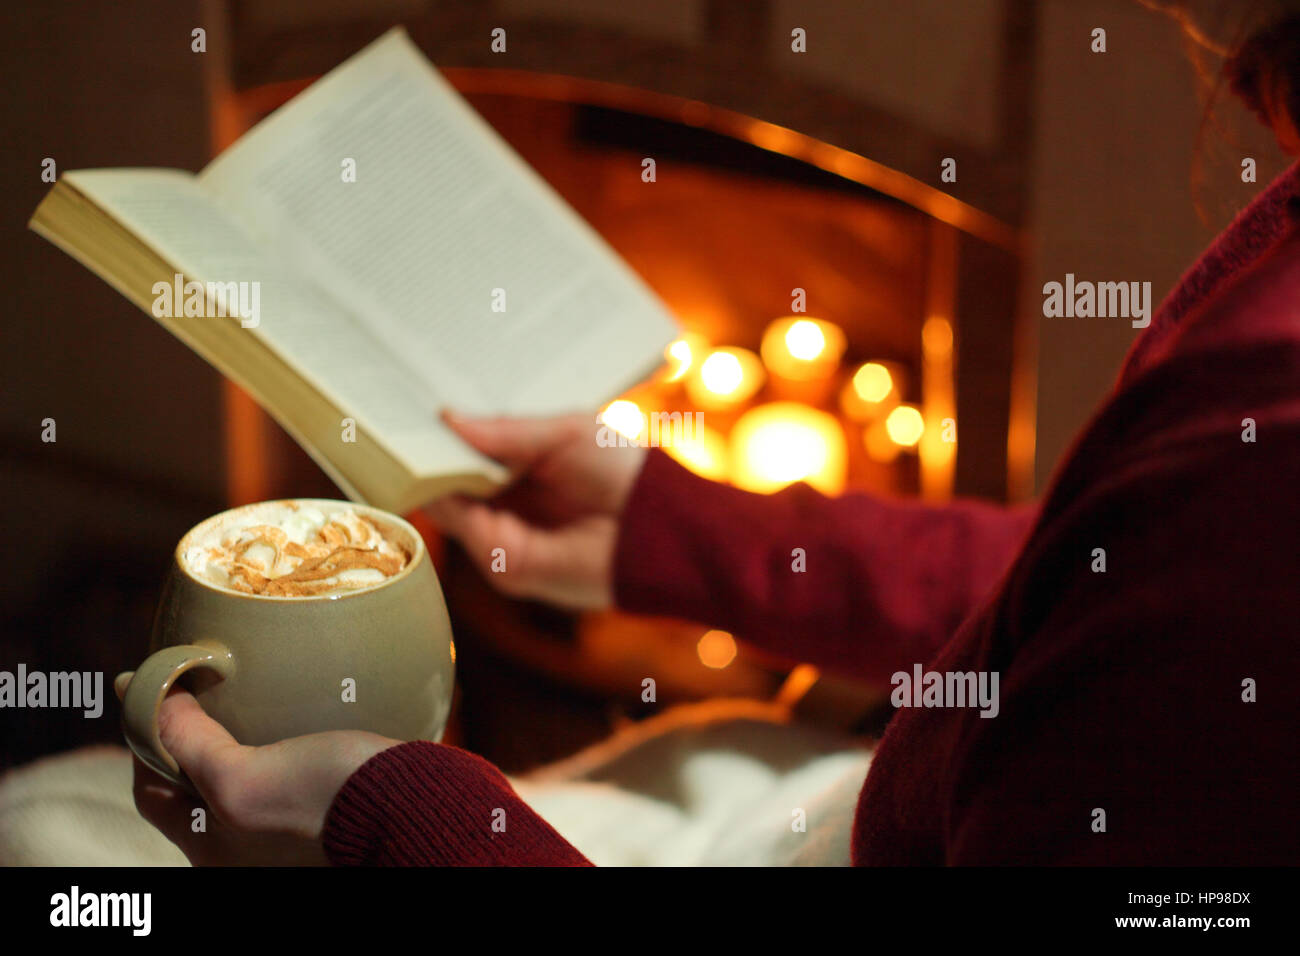 A woman reads a book with a mug of cream topped mocha (coffee and chocolate) by an open fireplace lit with candles - Stock Image